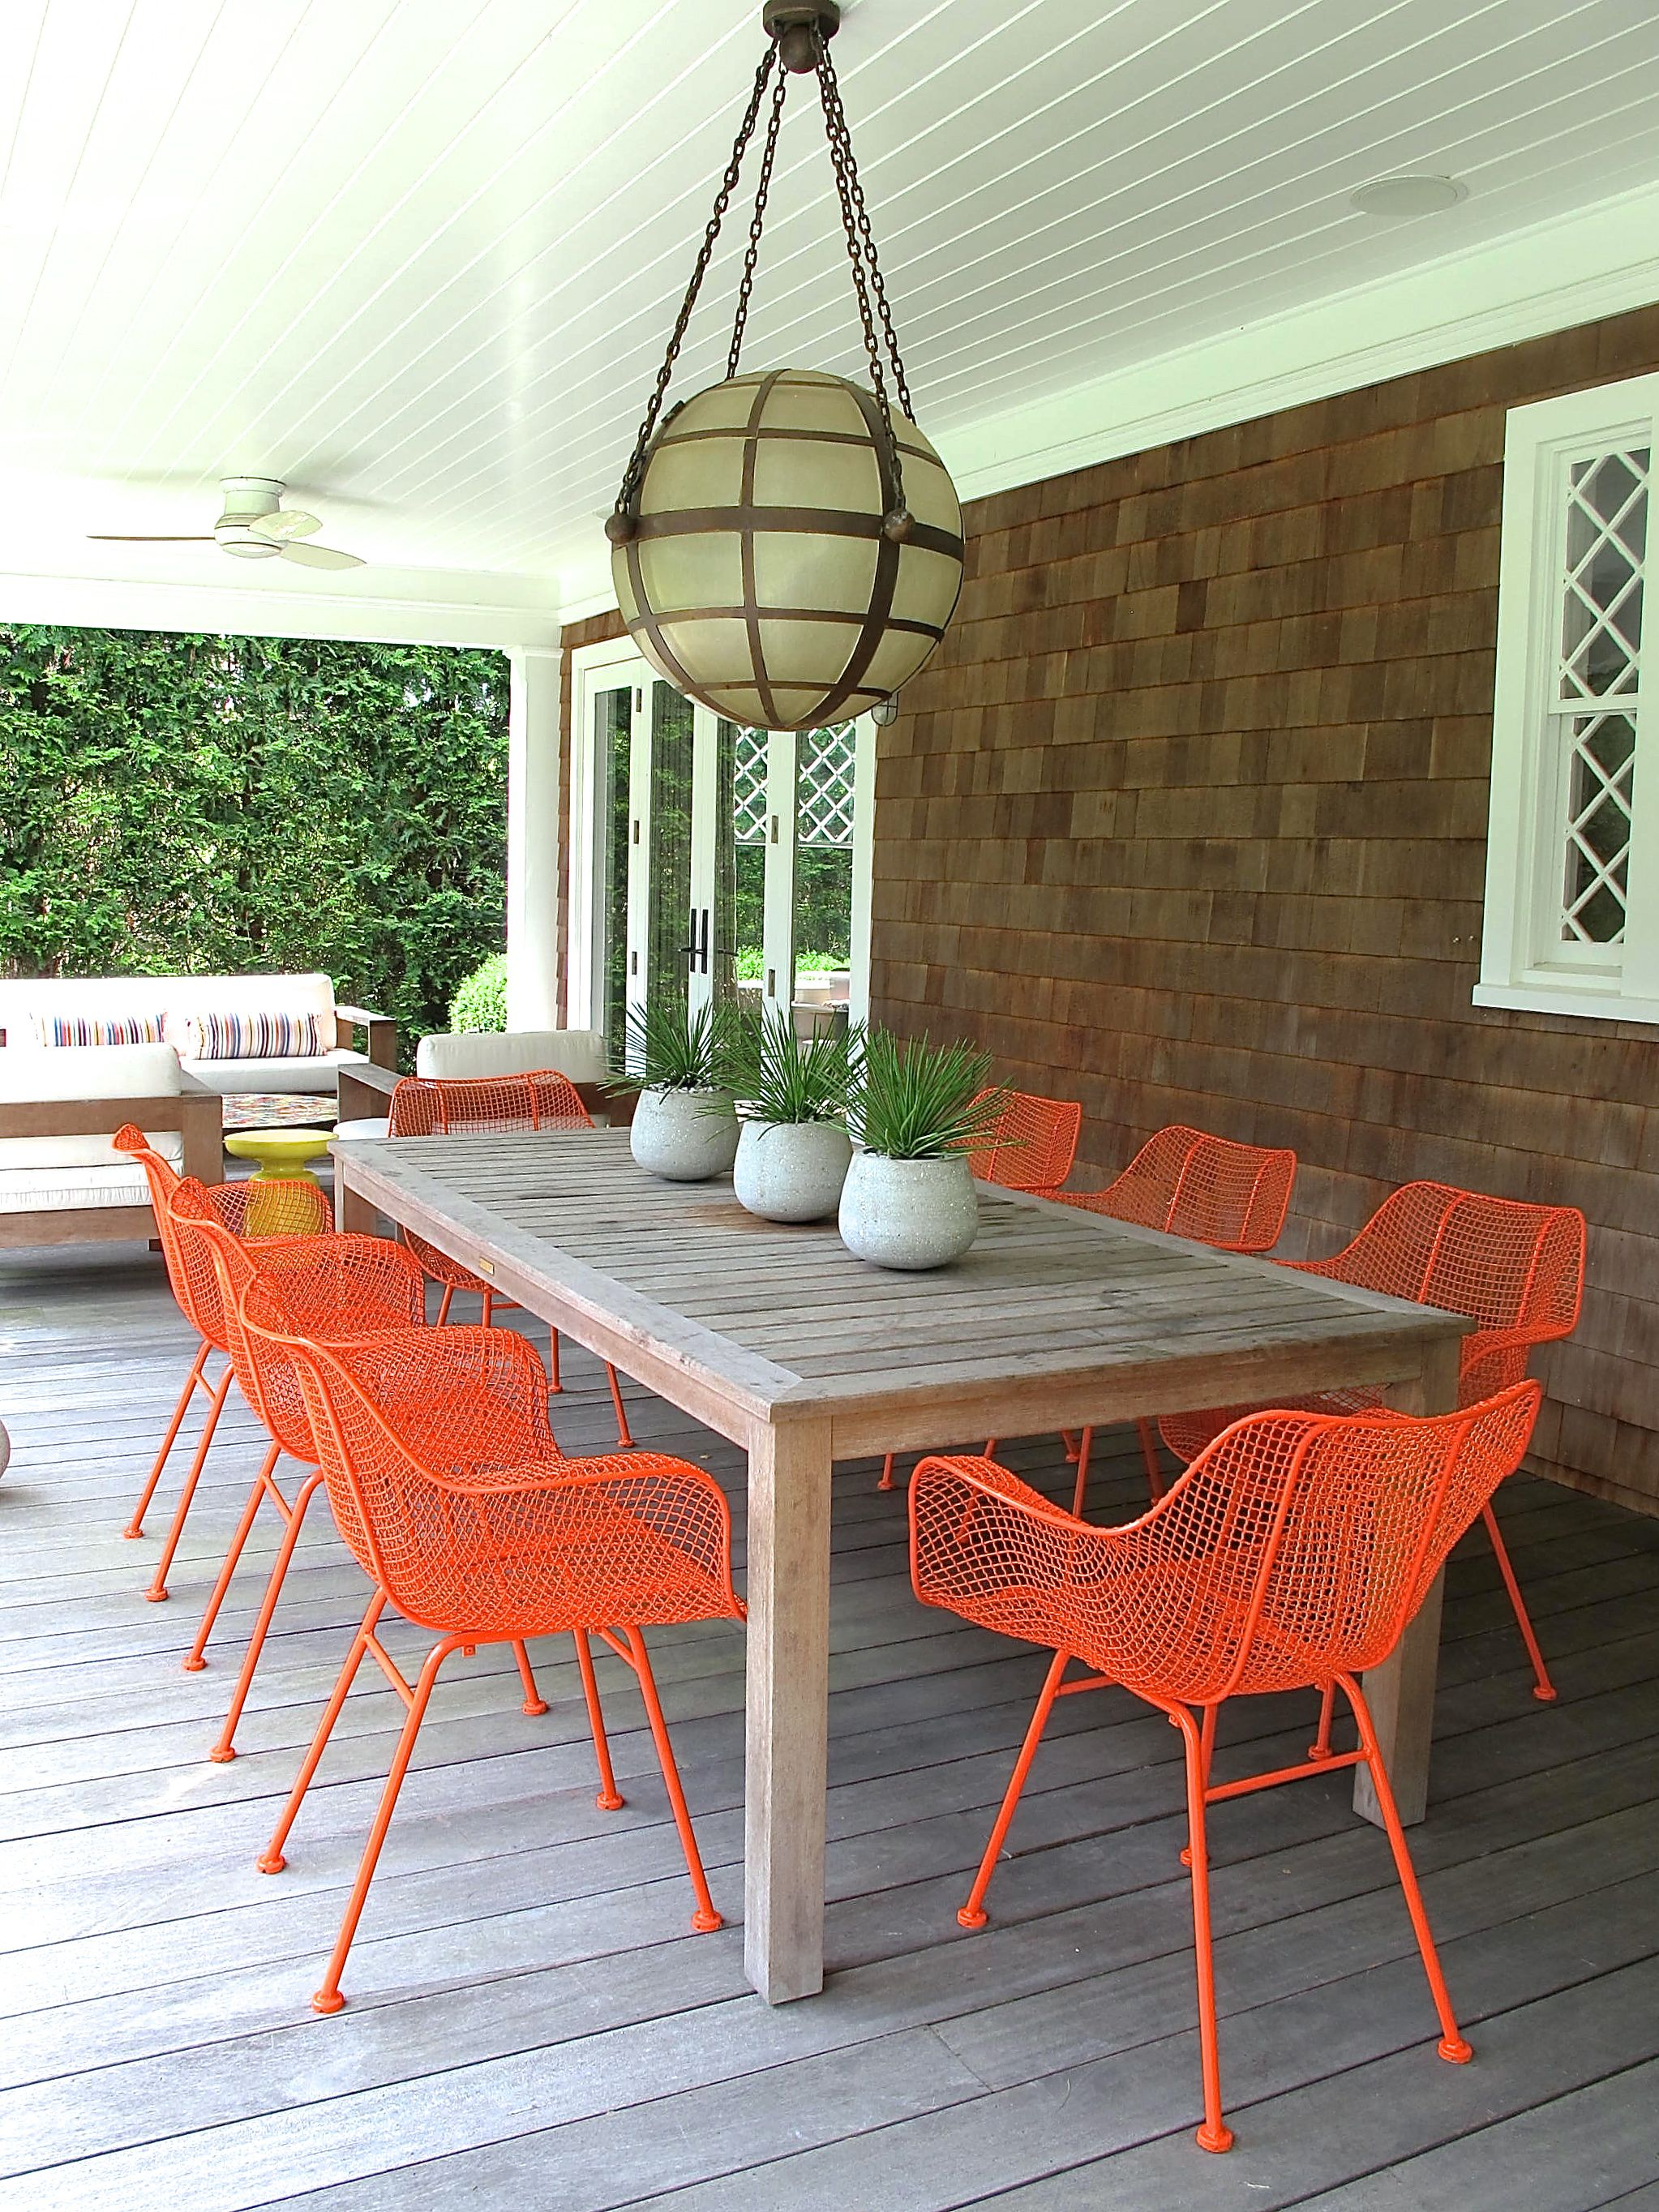 10 Favorite Outdoor Dining Spaces Outdoor Dining Room Outdoor